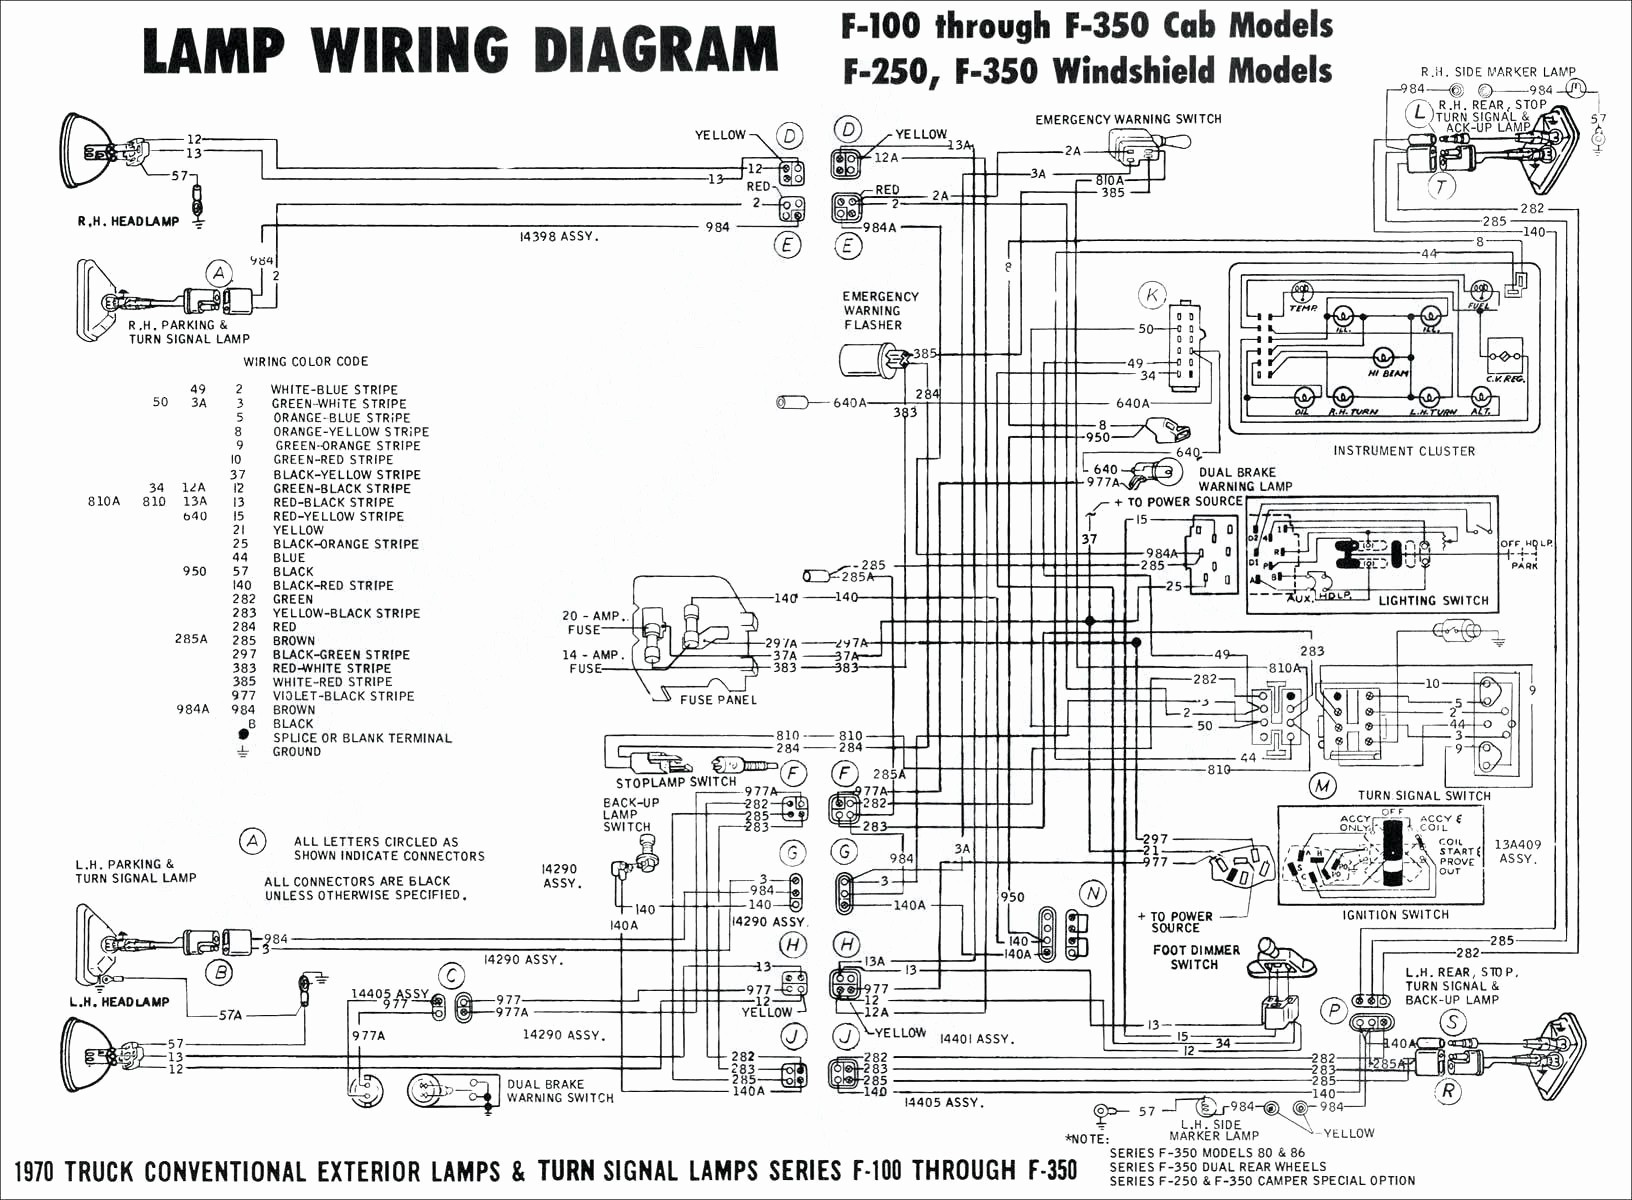 1997 Nissan Maxima Engine Diagram Nissan 240sx Ignition Switch Wiring Diagram Worksheet and Wiring Of 1997 Nissan Maxima Engine Diagram